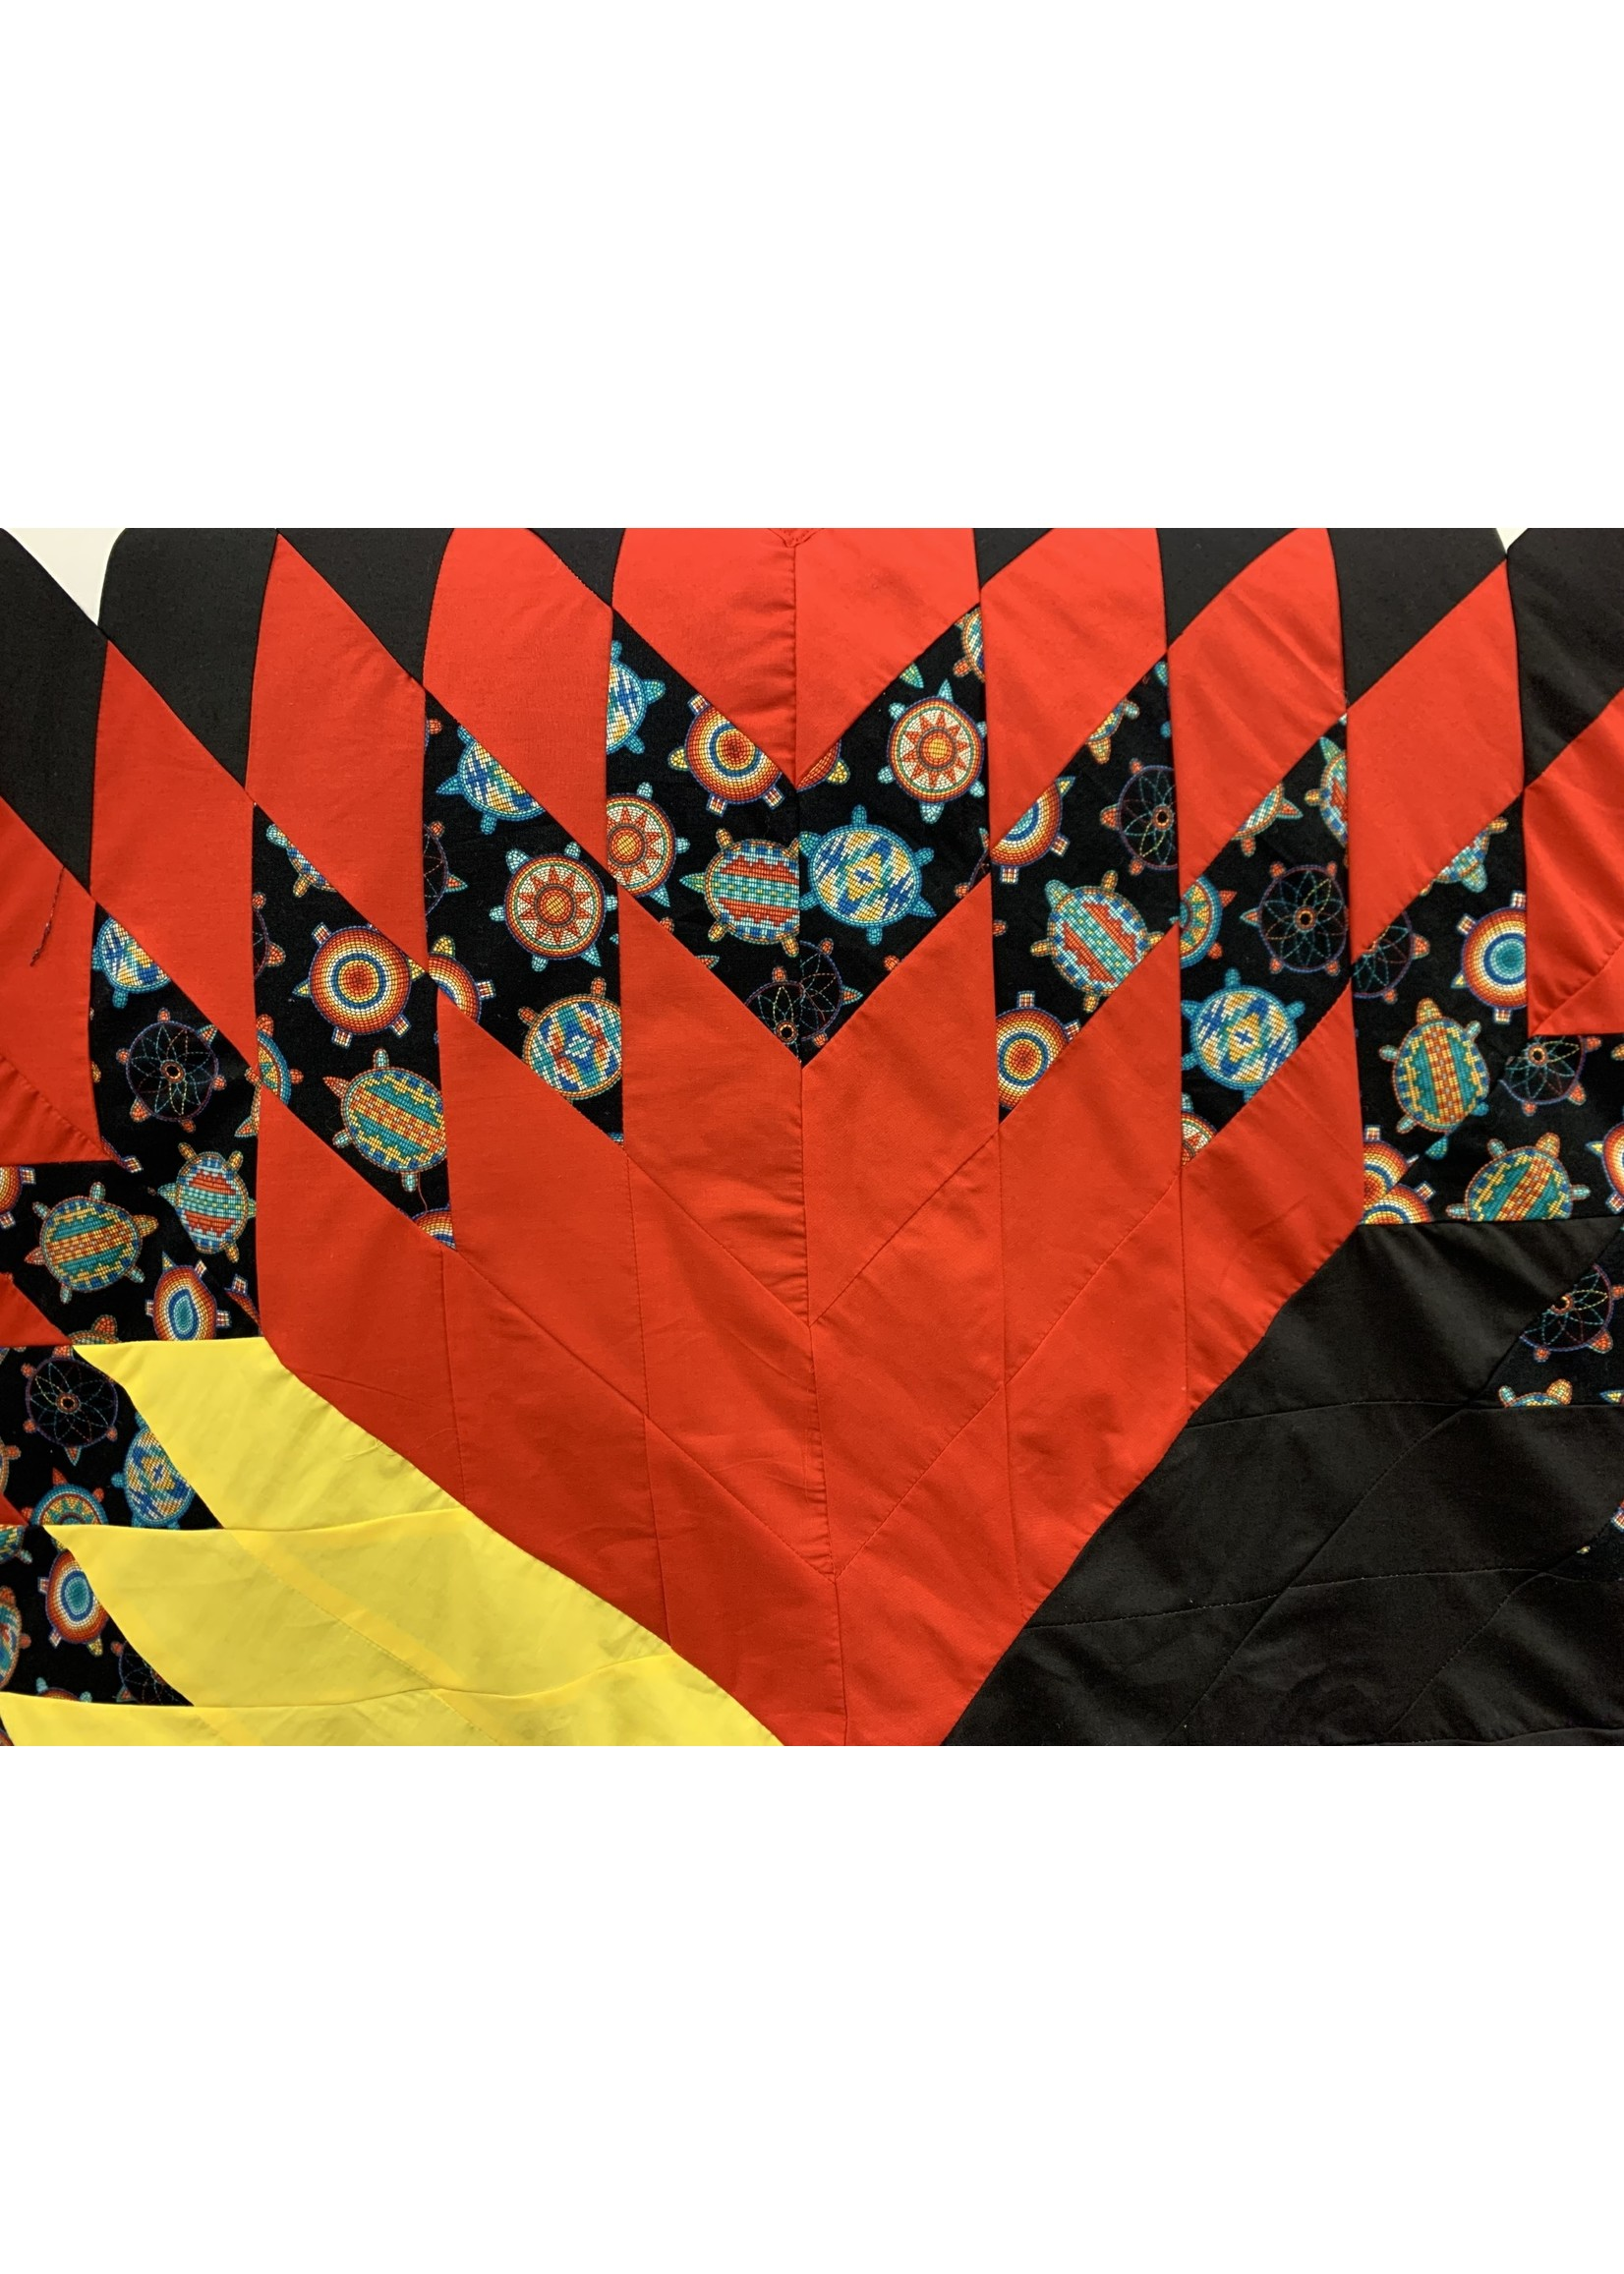 Circle of Eagles Red Black Yellow and White Star Blanket